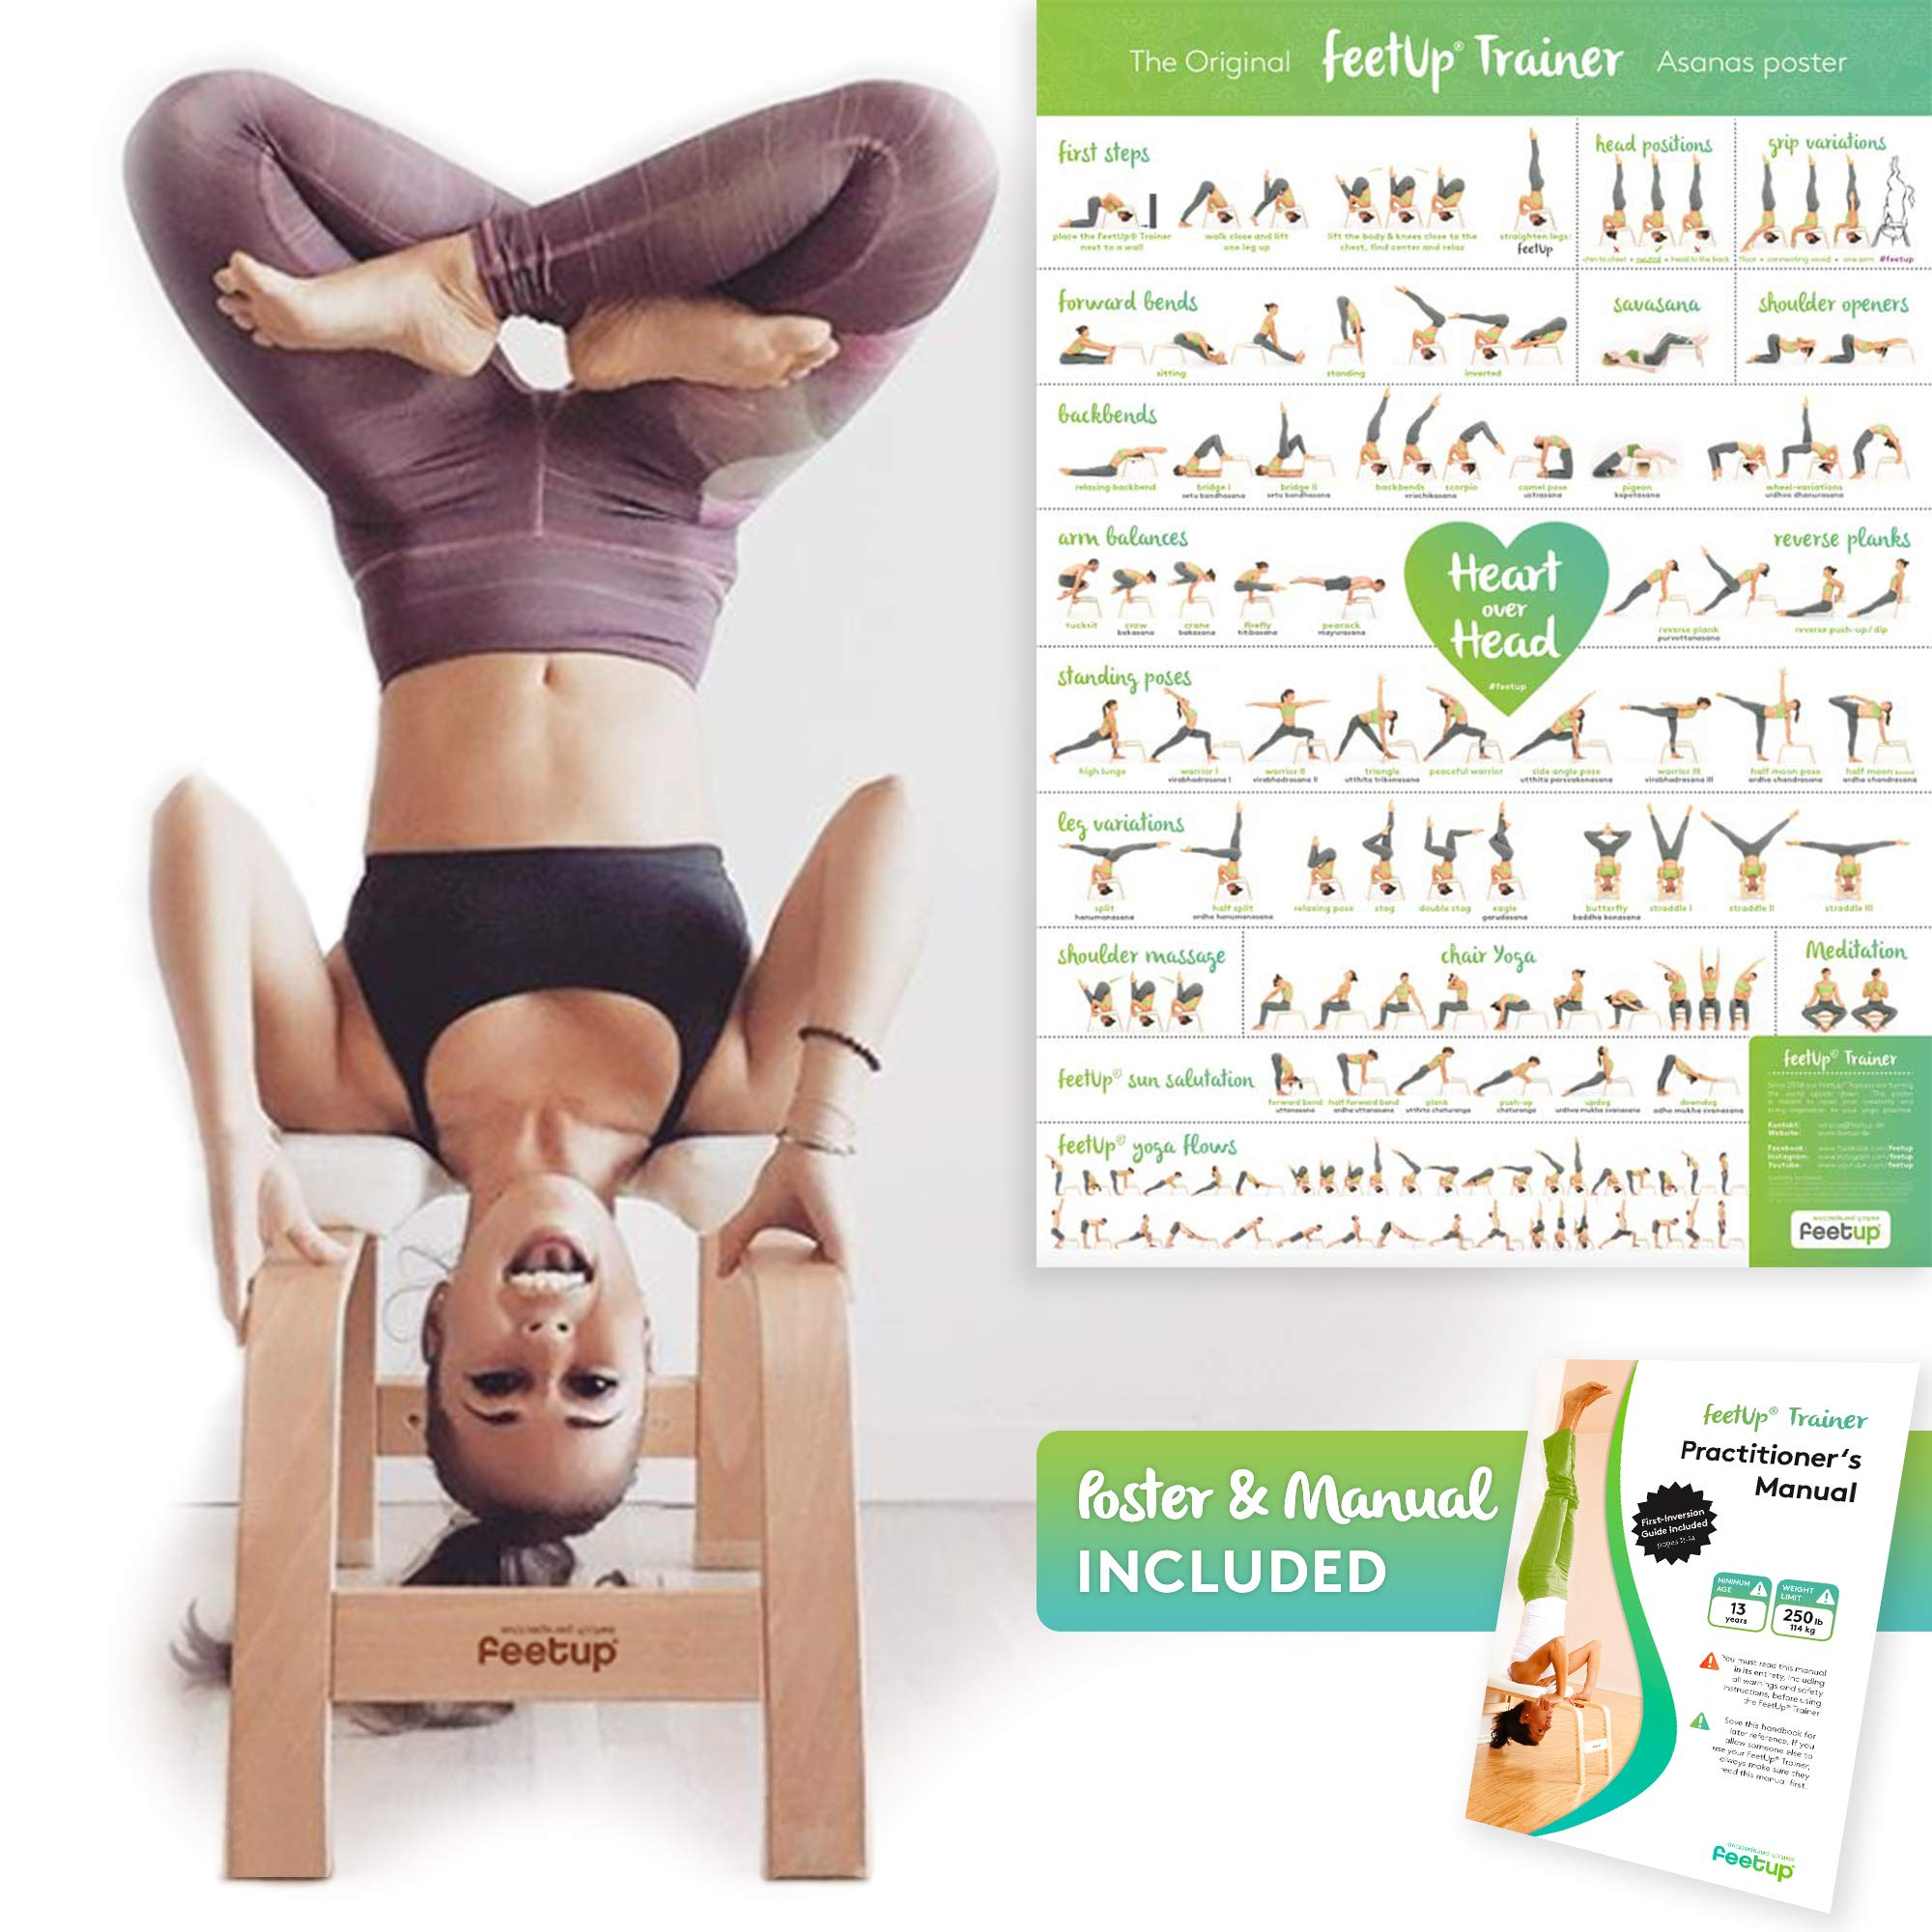 FeetUp Trainer (The Original) - Invert Safely & Easily. Get Fit. Relax. Turn Your Yoga Upside Down! (Classic, Black)